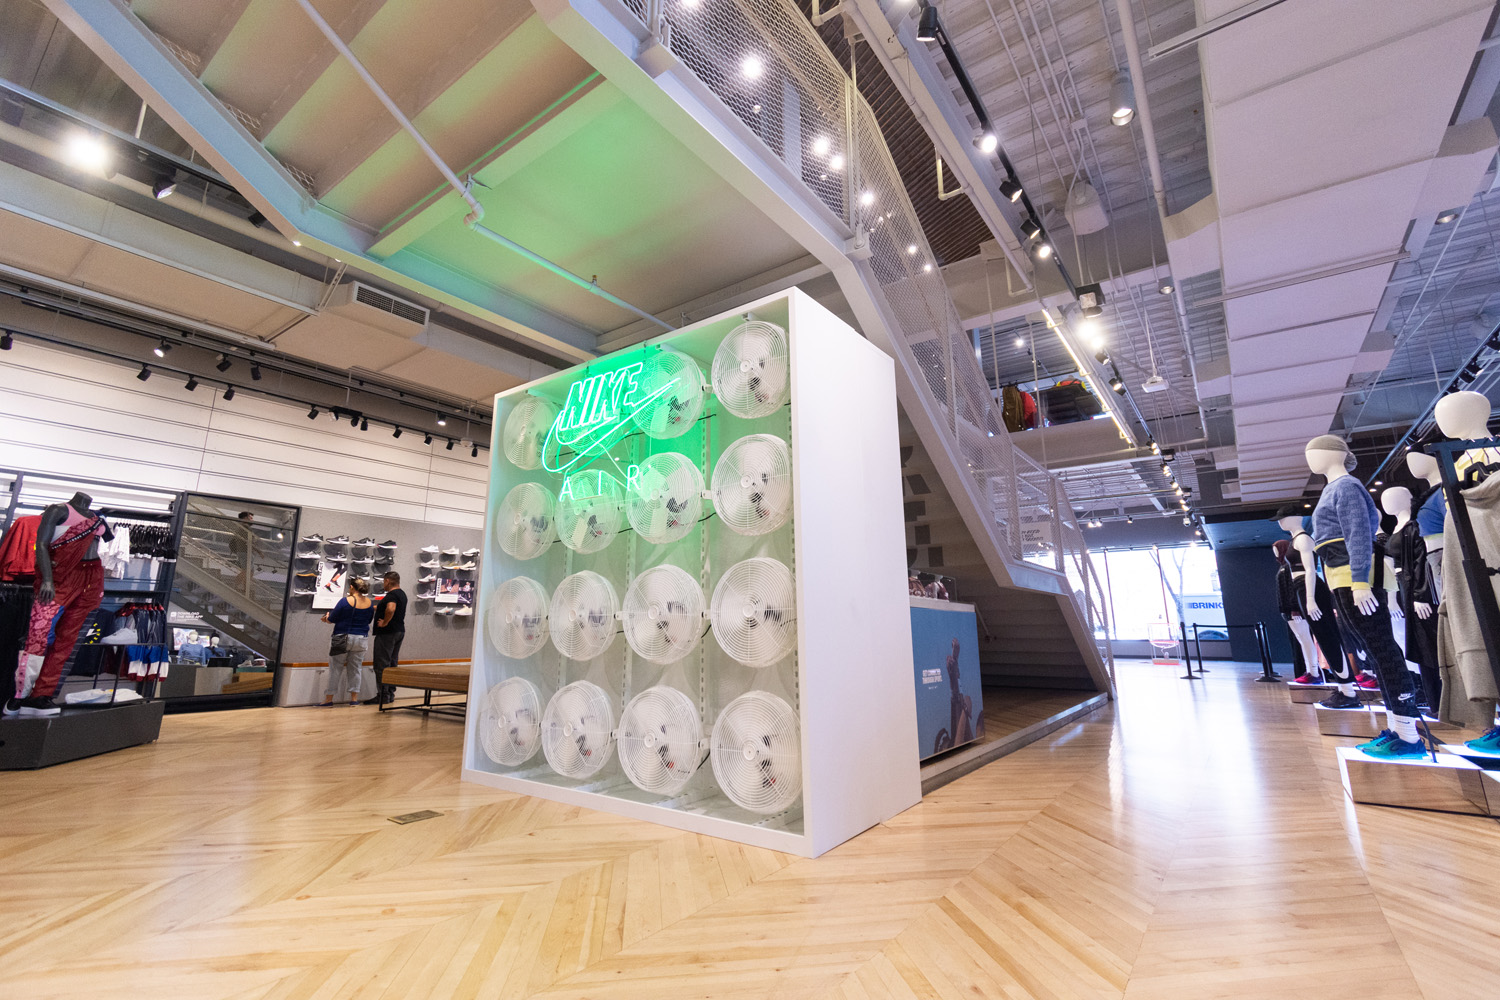 Futuristic Fan Wall Build Out for Nike Store